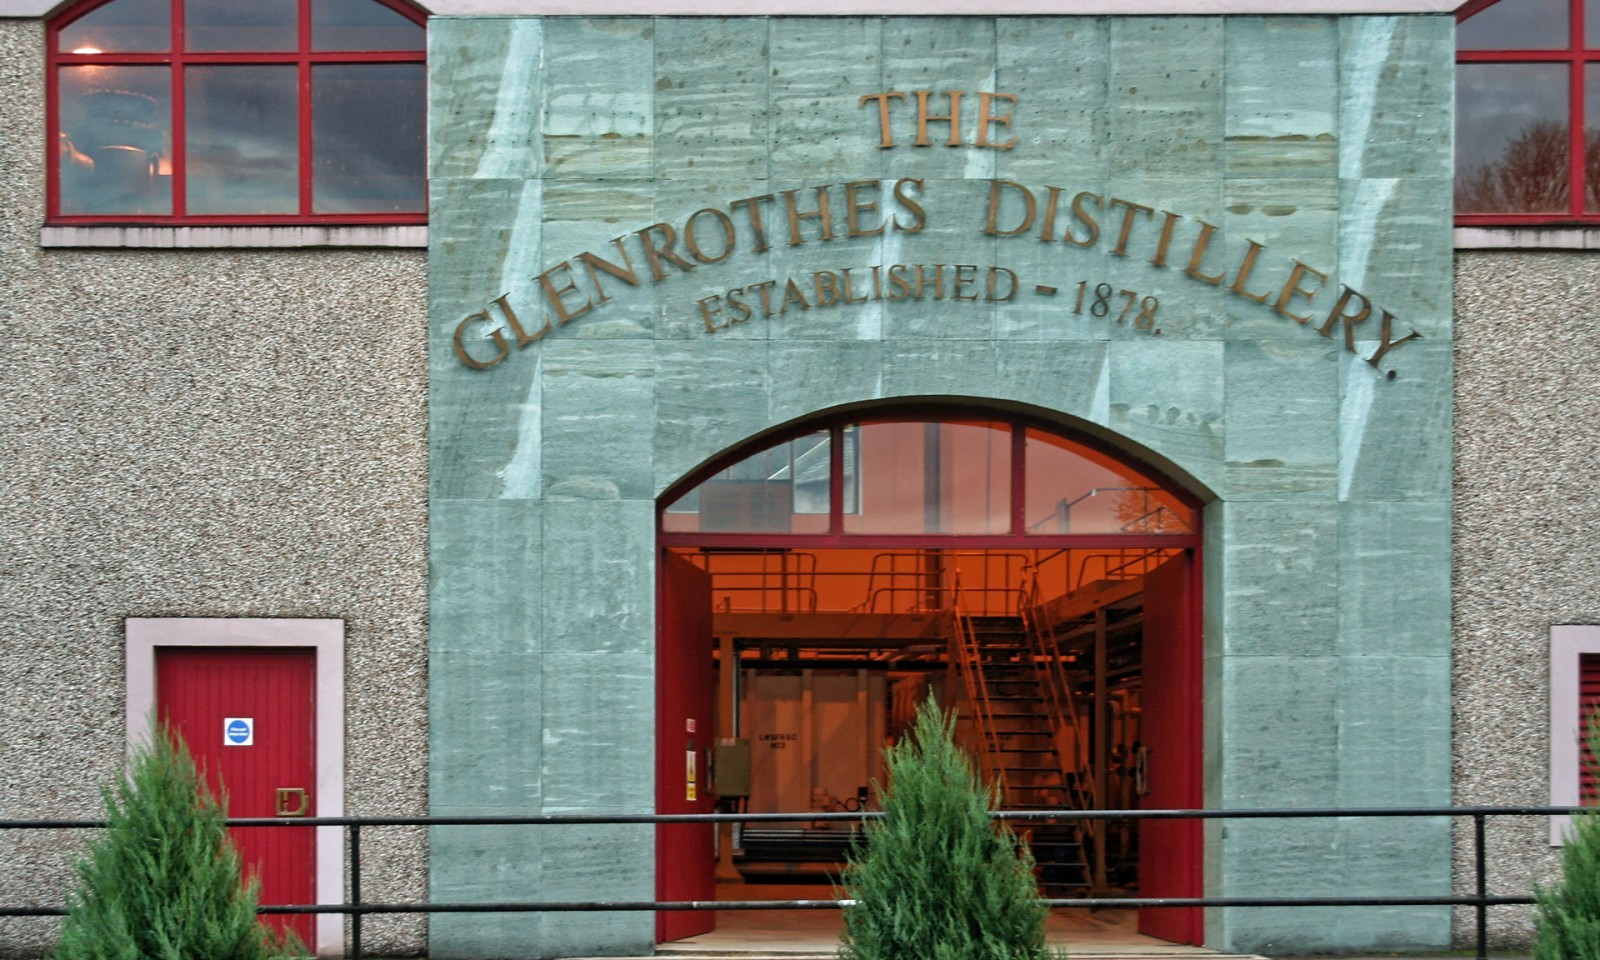 Glenrothes Stillhouse Eingang